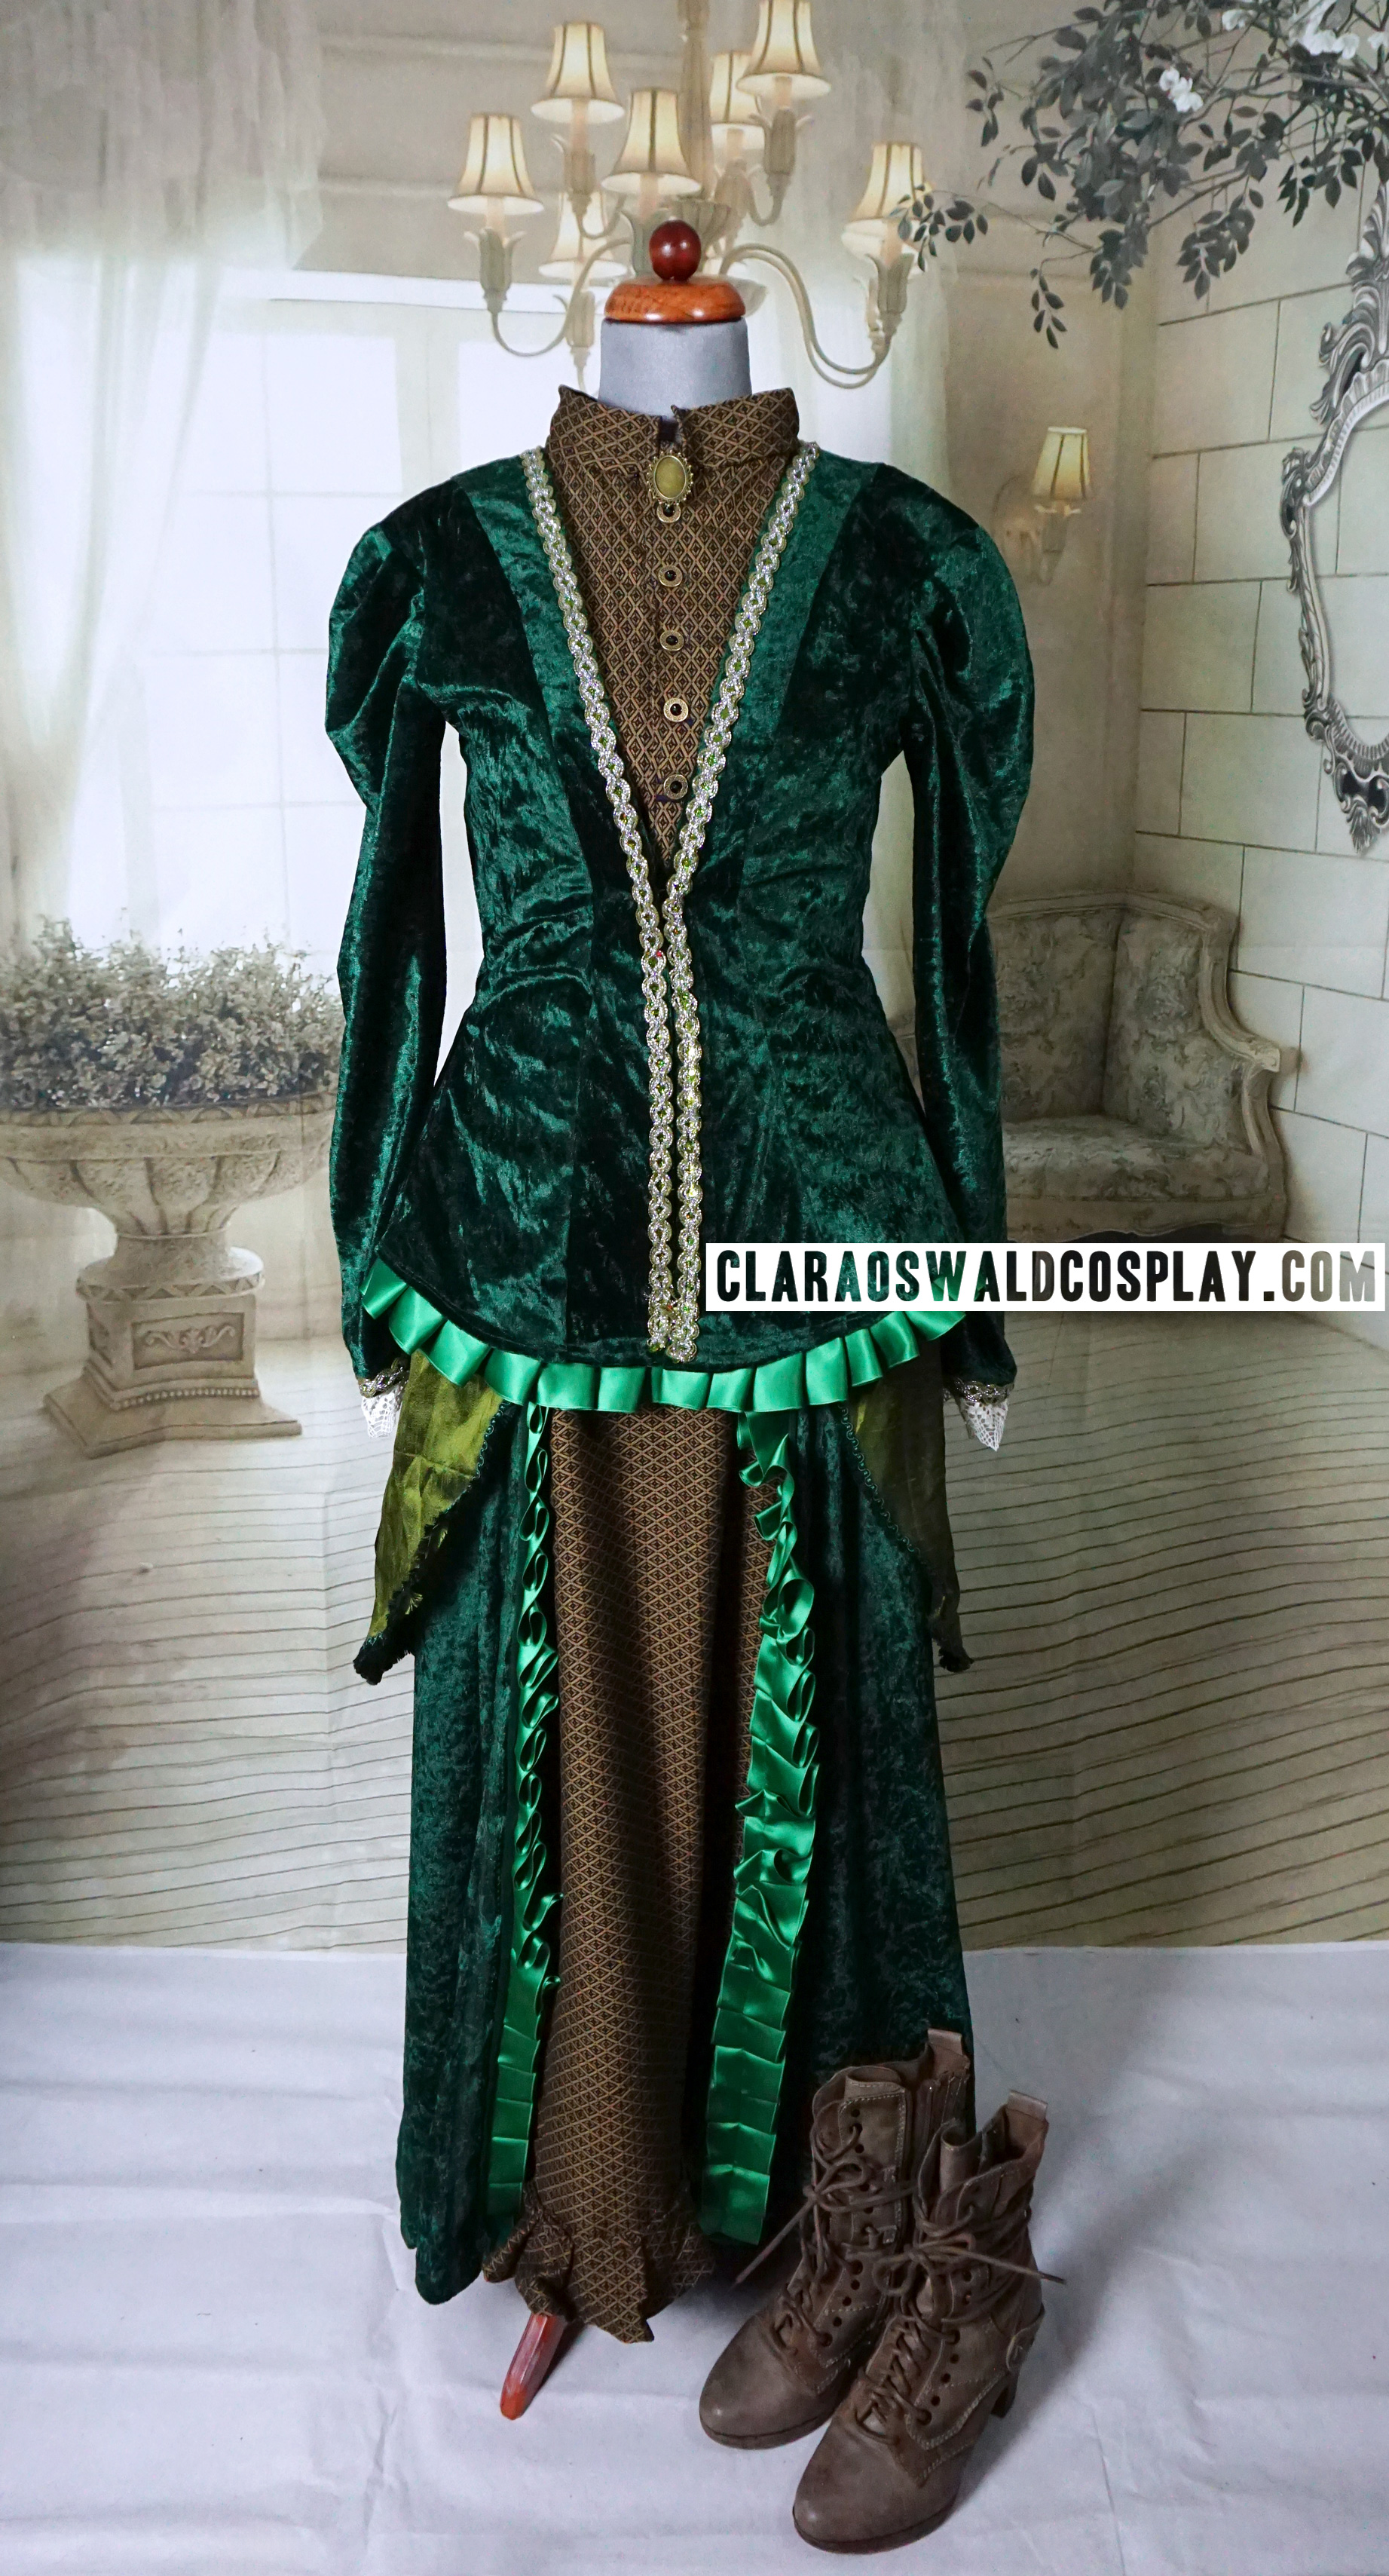 My version of Clara Oswald's custom made Victorian Dress that she wore in Deep Breath